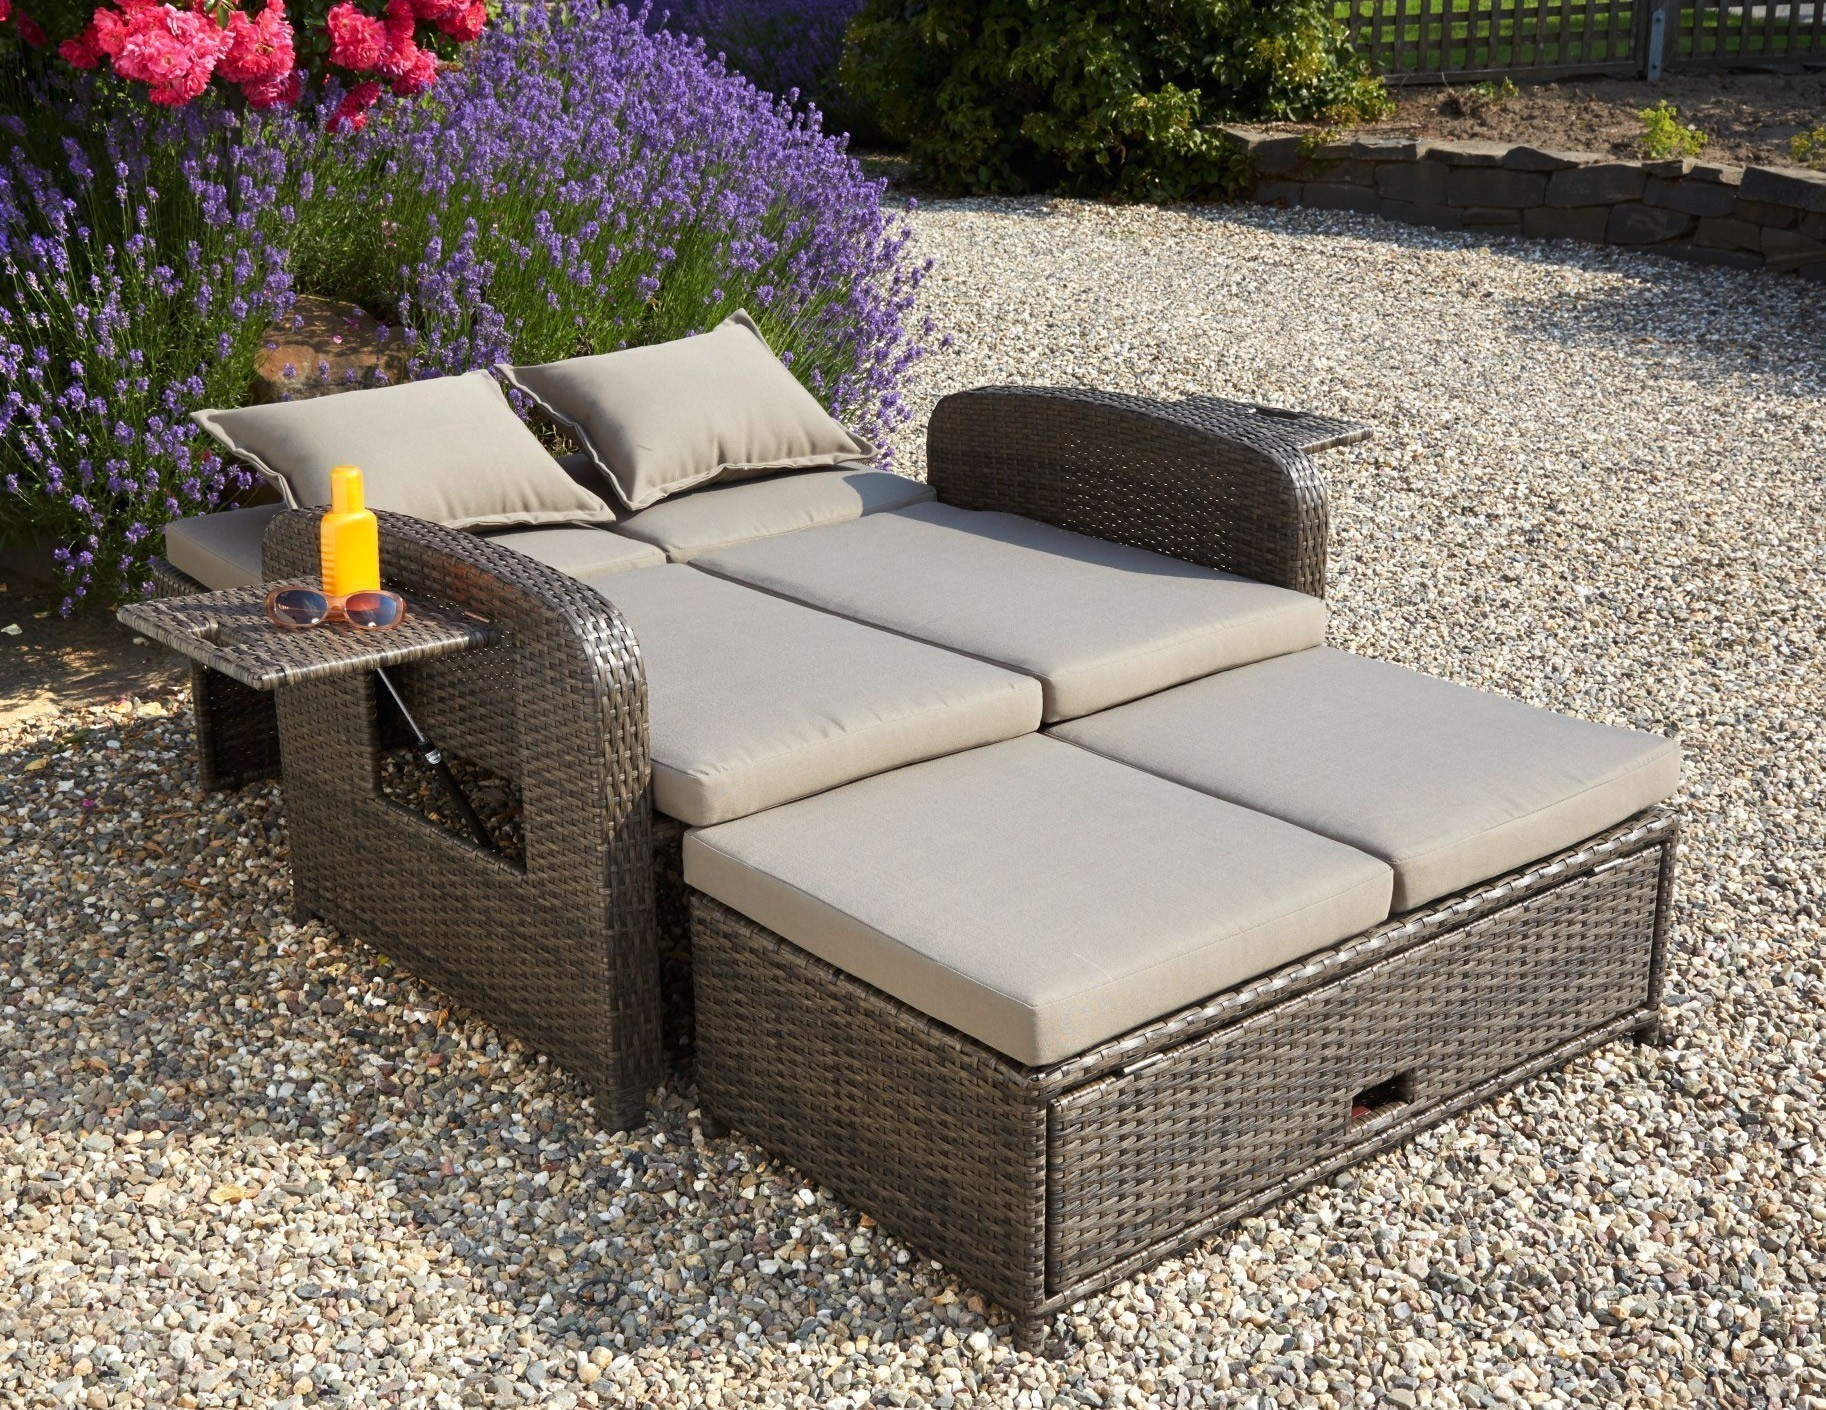 liege polyrattan braun affordable with liege polyrattan braun fabulous rattan liege braun foto. Black Bedroom Furniture Sets. Home Design Ideas